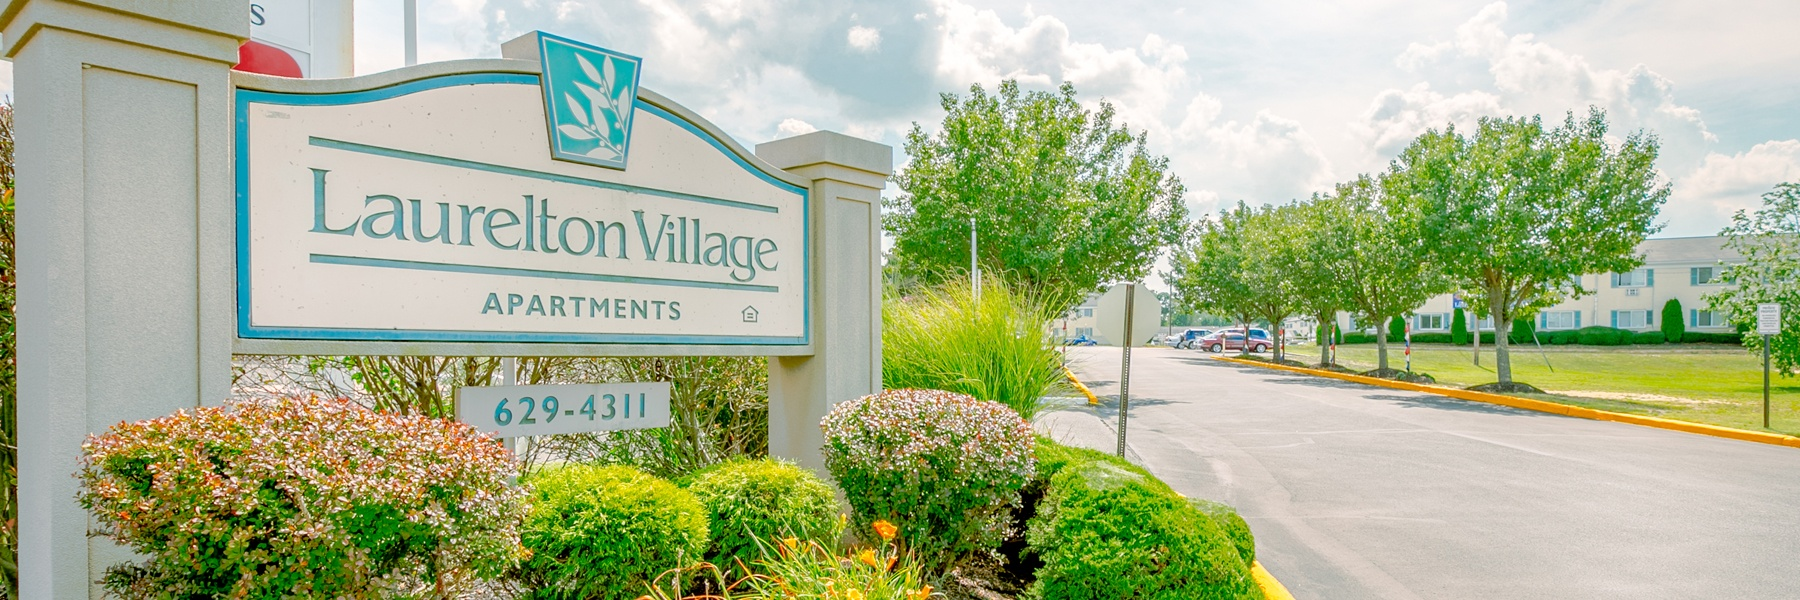 Laurelton Village Apartments For Rent in Williamstown, NJ Welcome